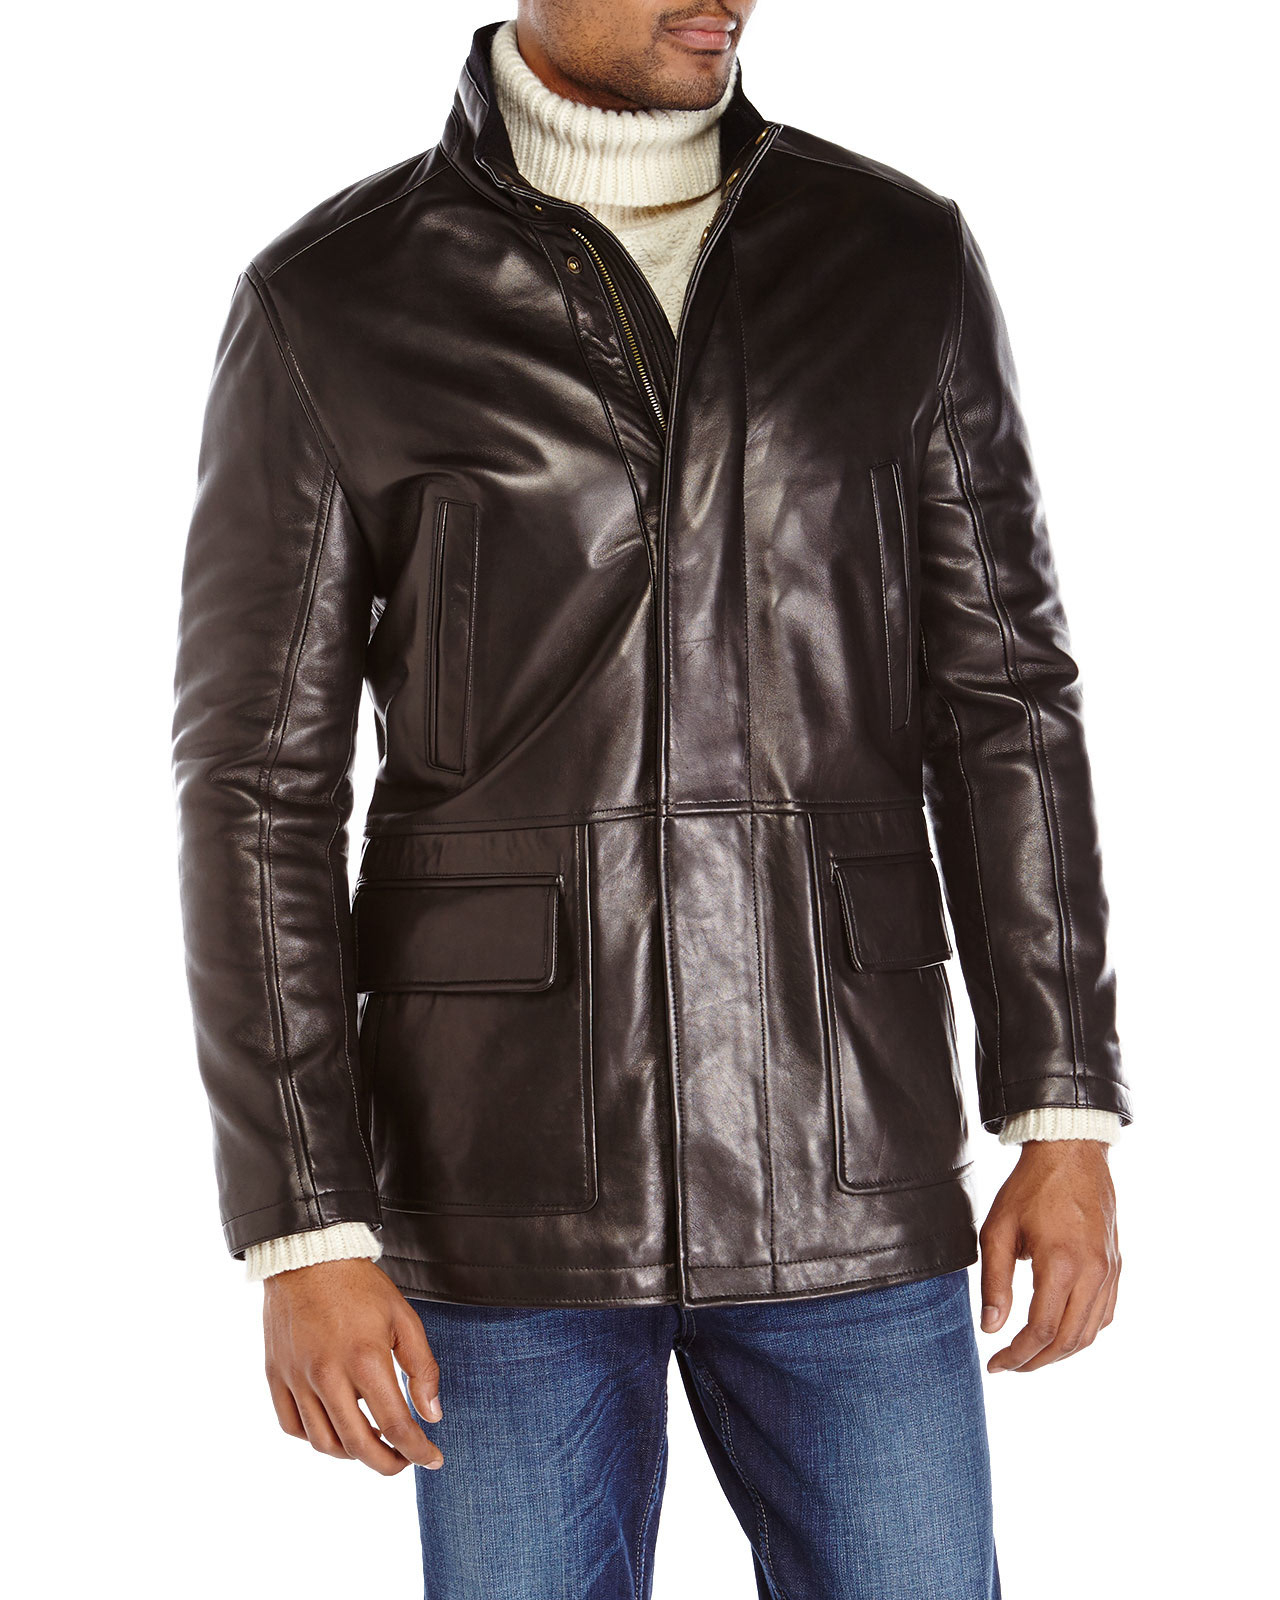 Cole haan Black Leather Car Coat in Black for Men | Lyst